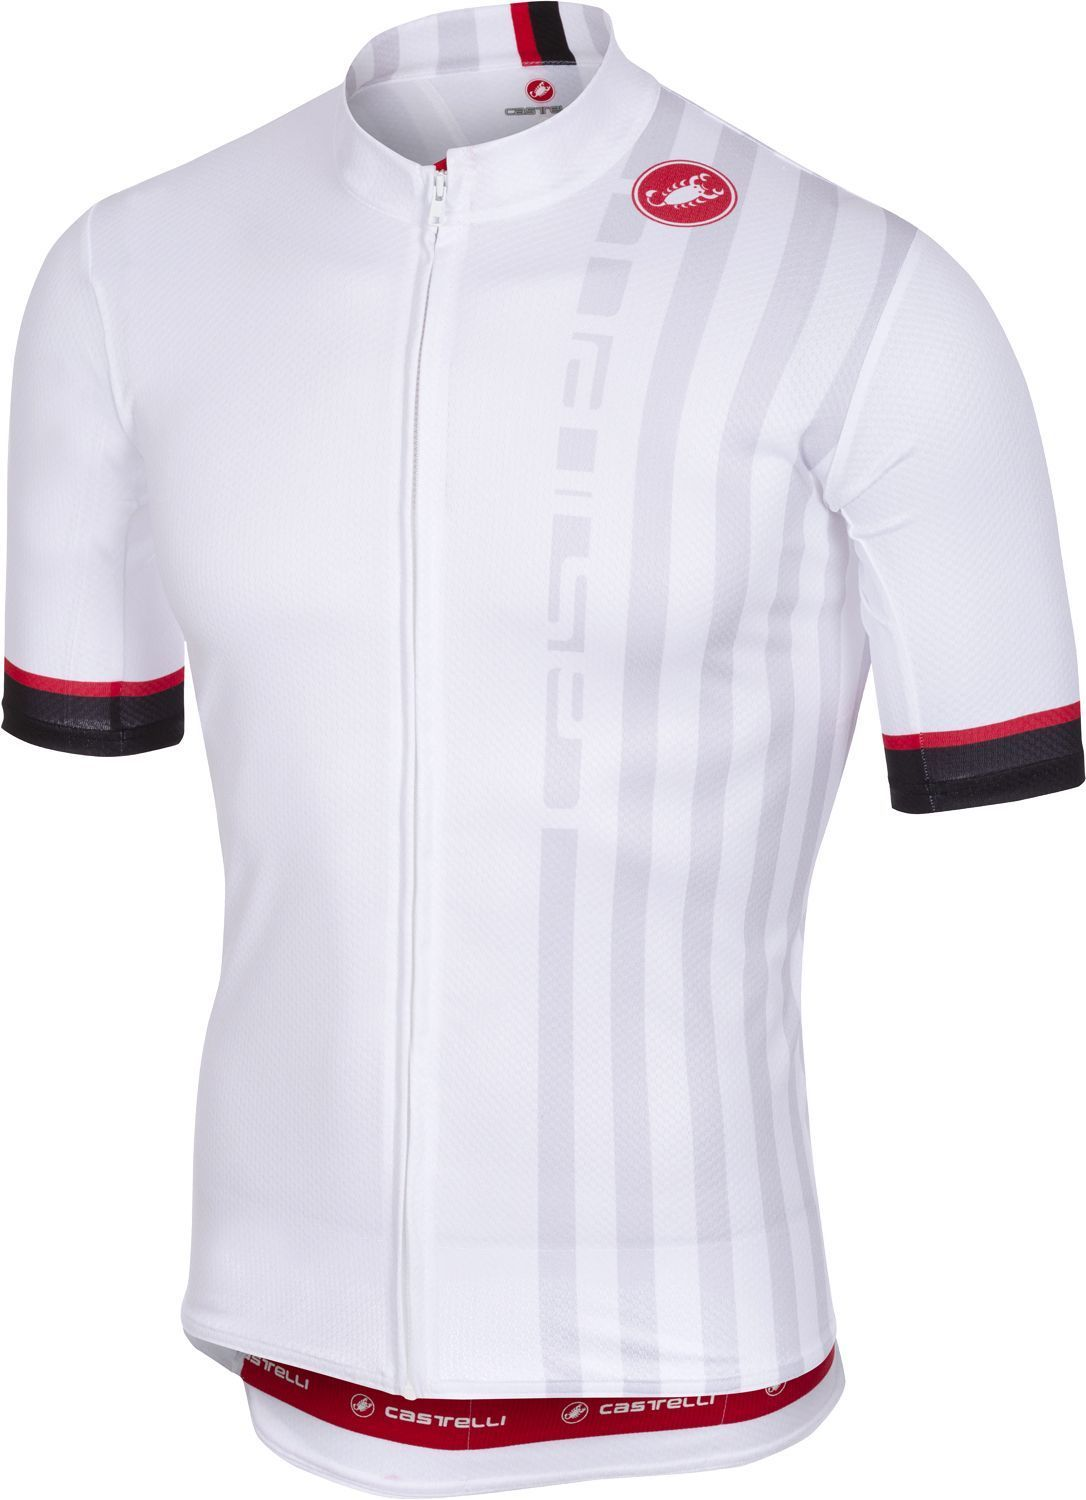 Castelli PODIO DOPPIO - short sleeve cycling jersey white. Previous 086d7dd9a